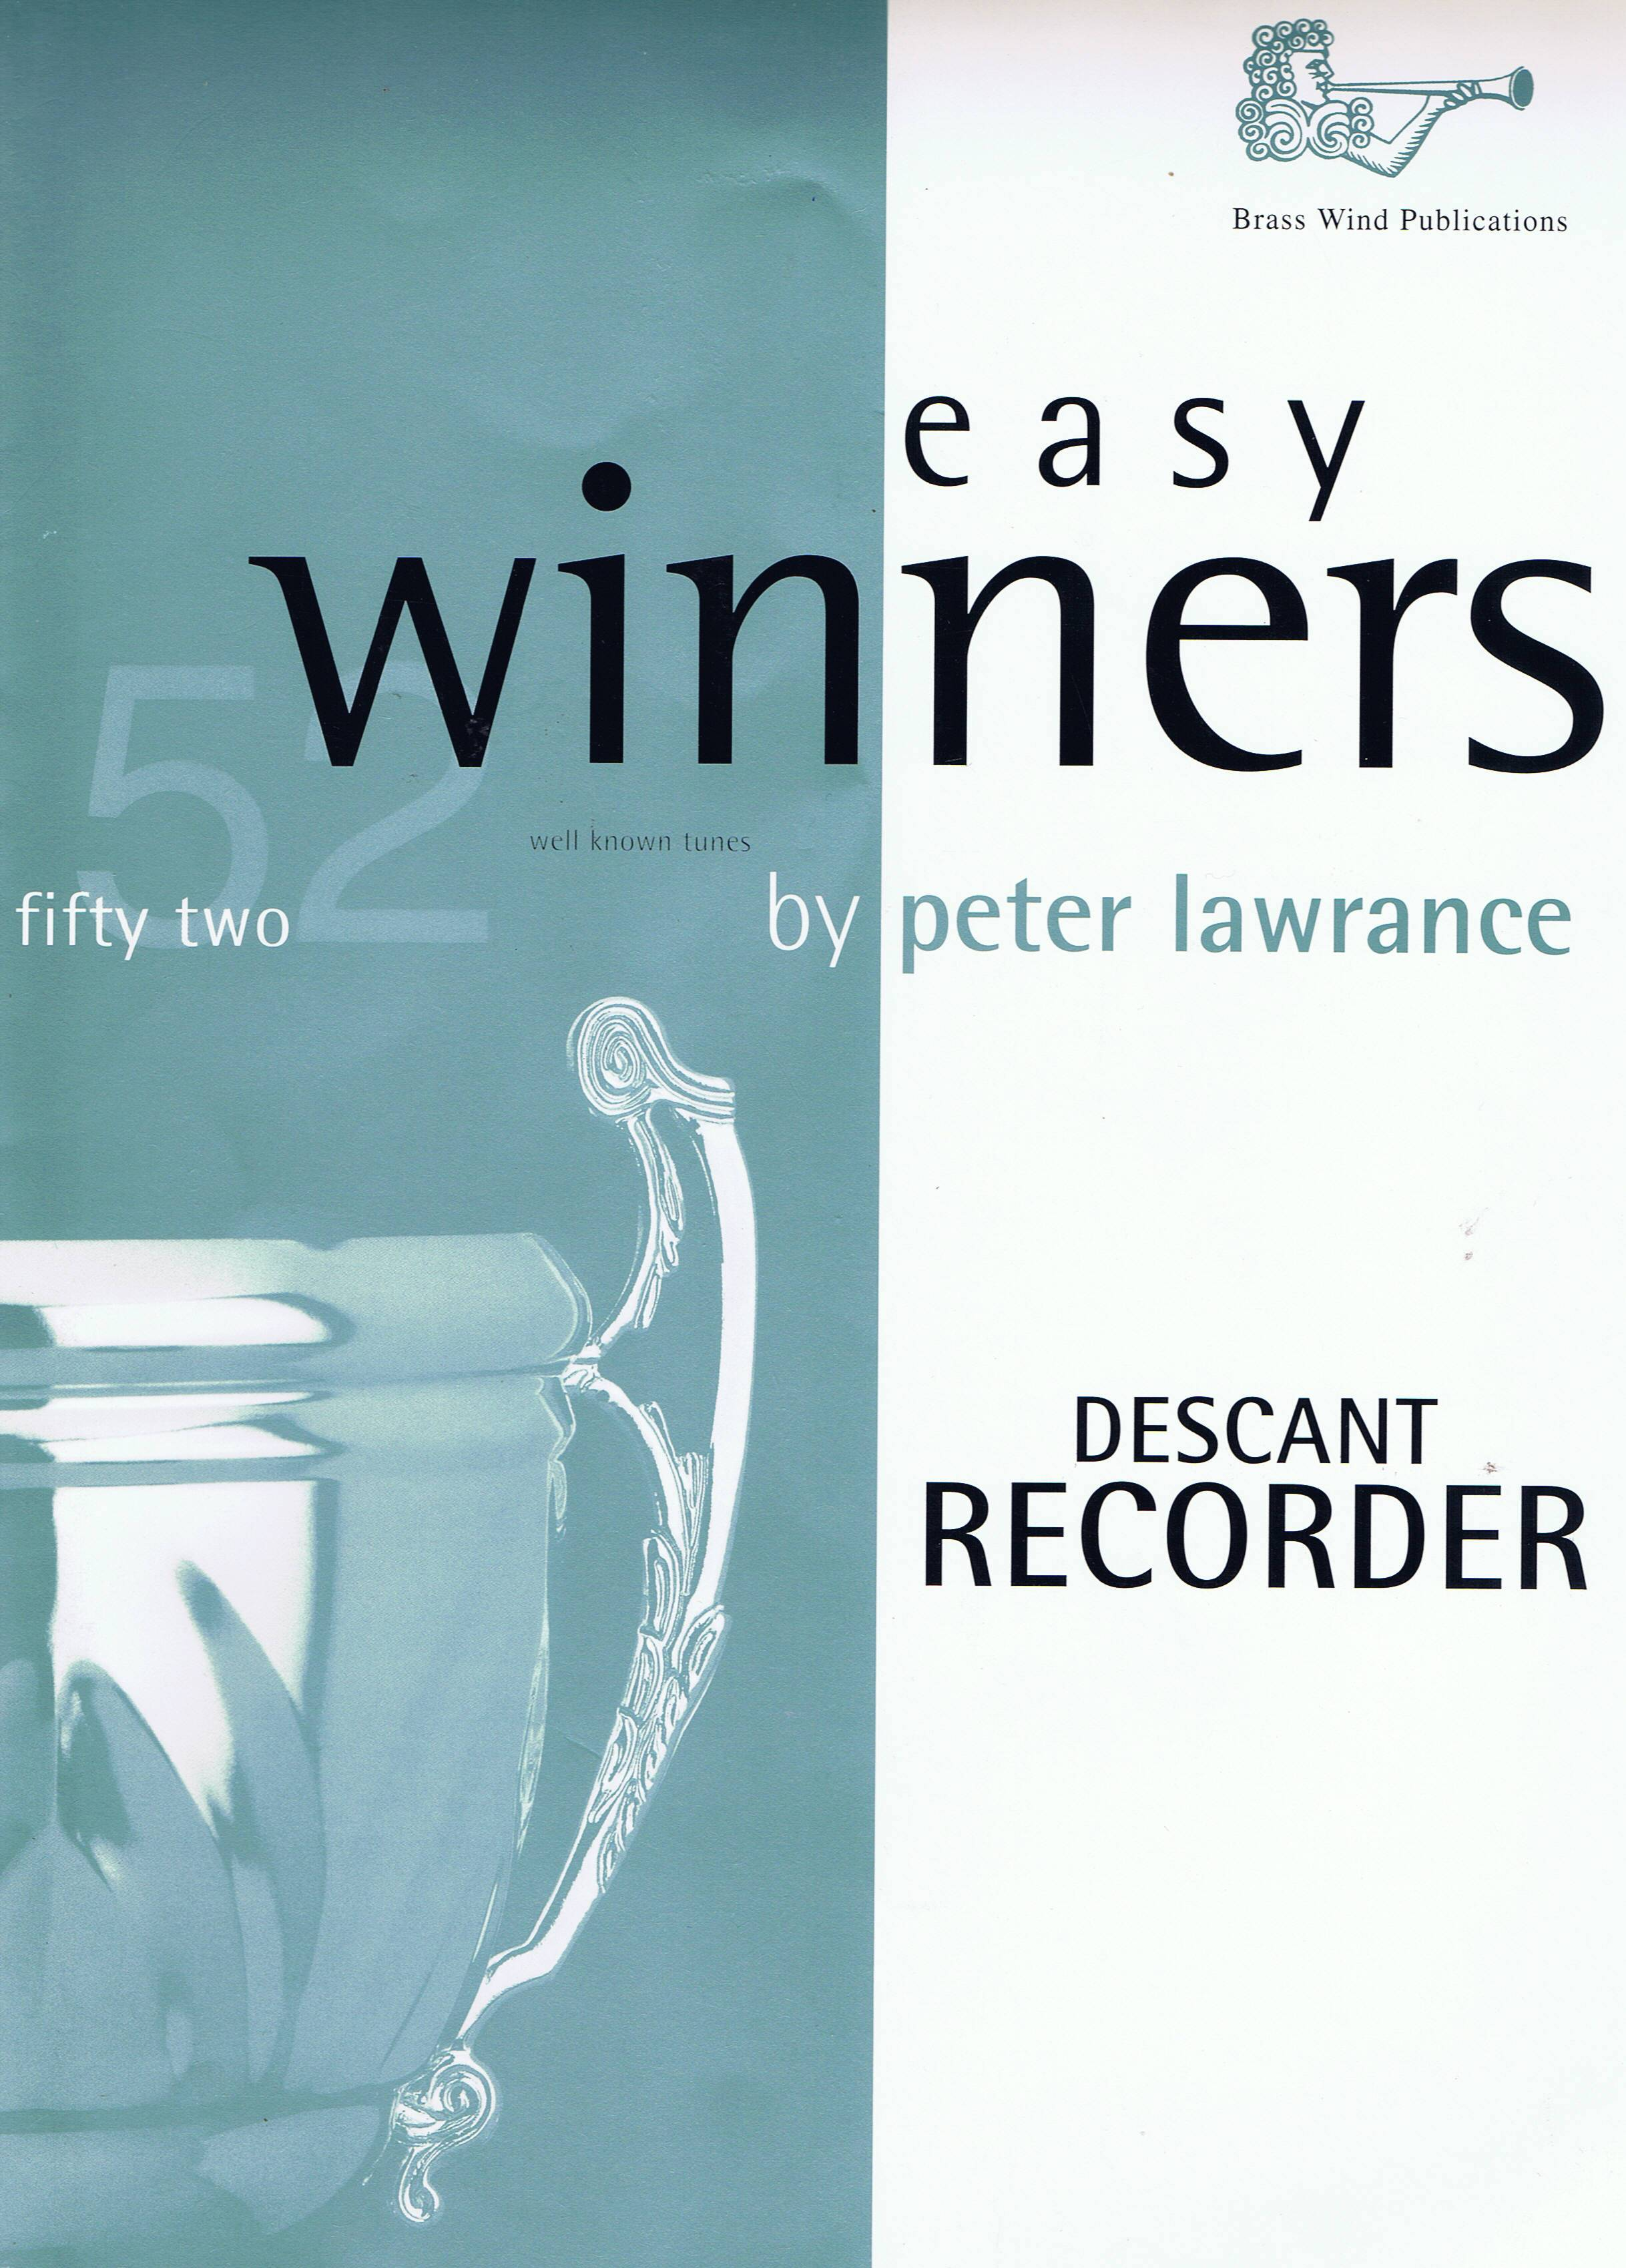 Peter Lawrance: Easy Winners for Descant Recorder: Descant Recorder: